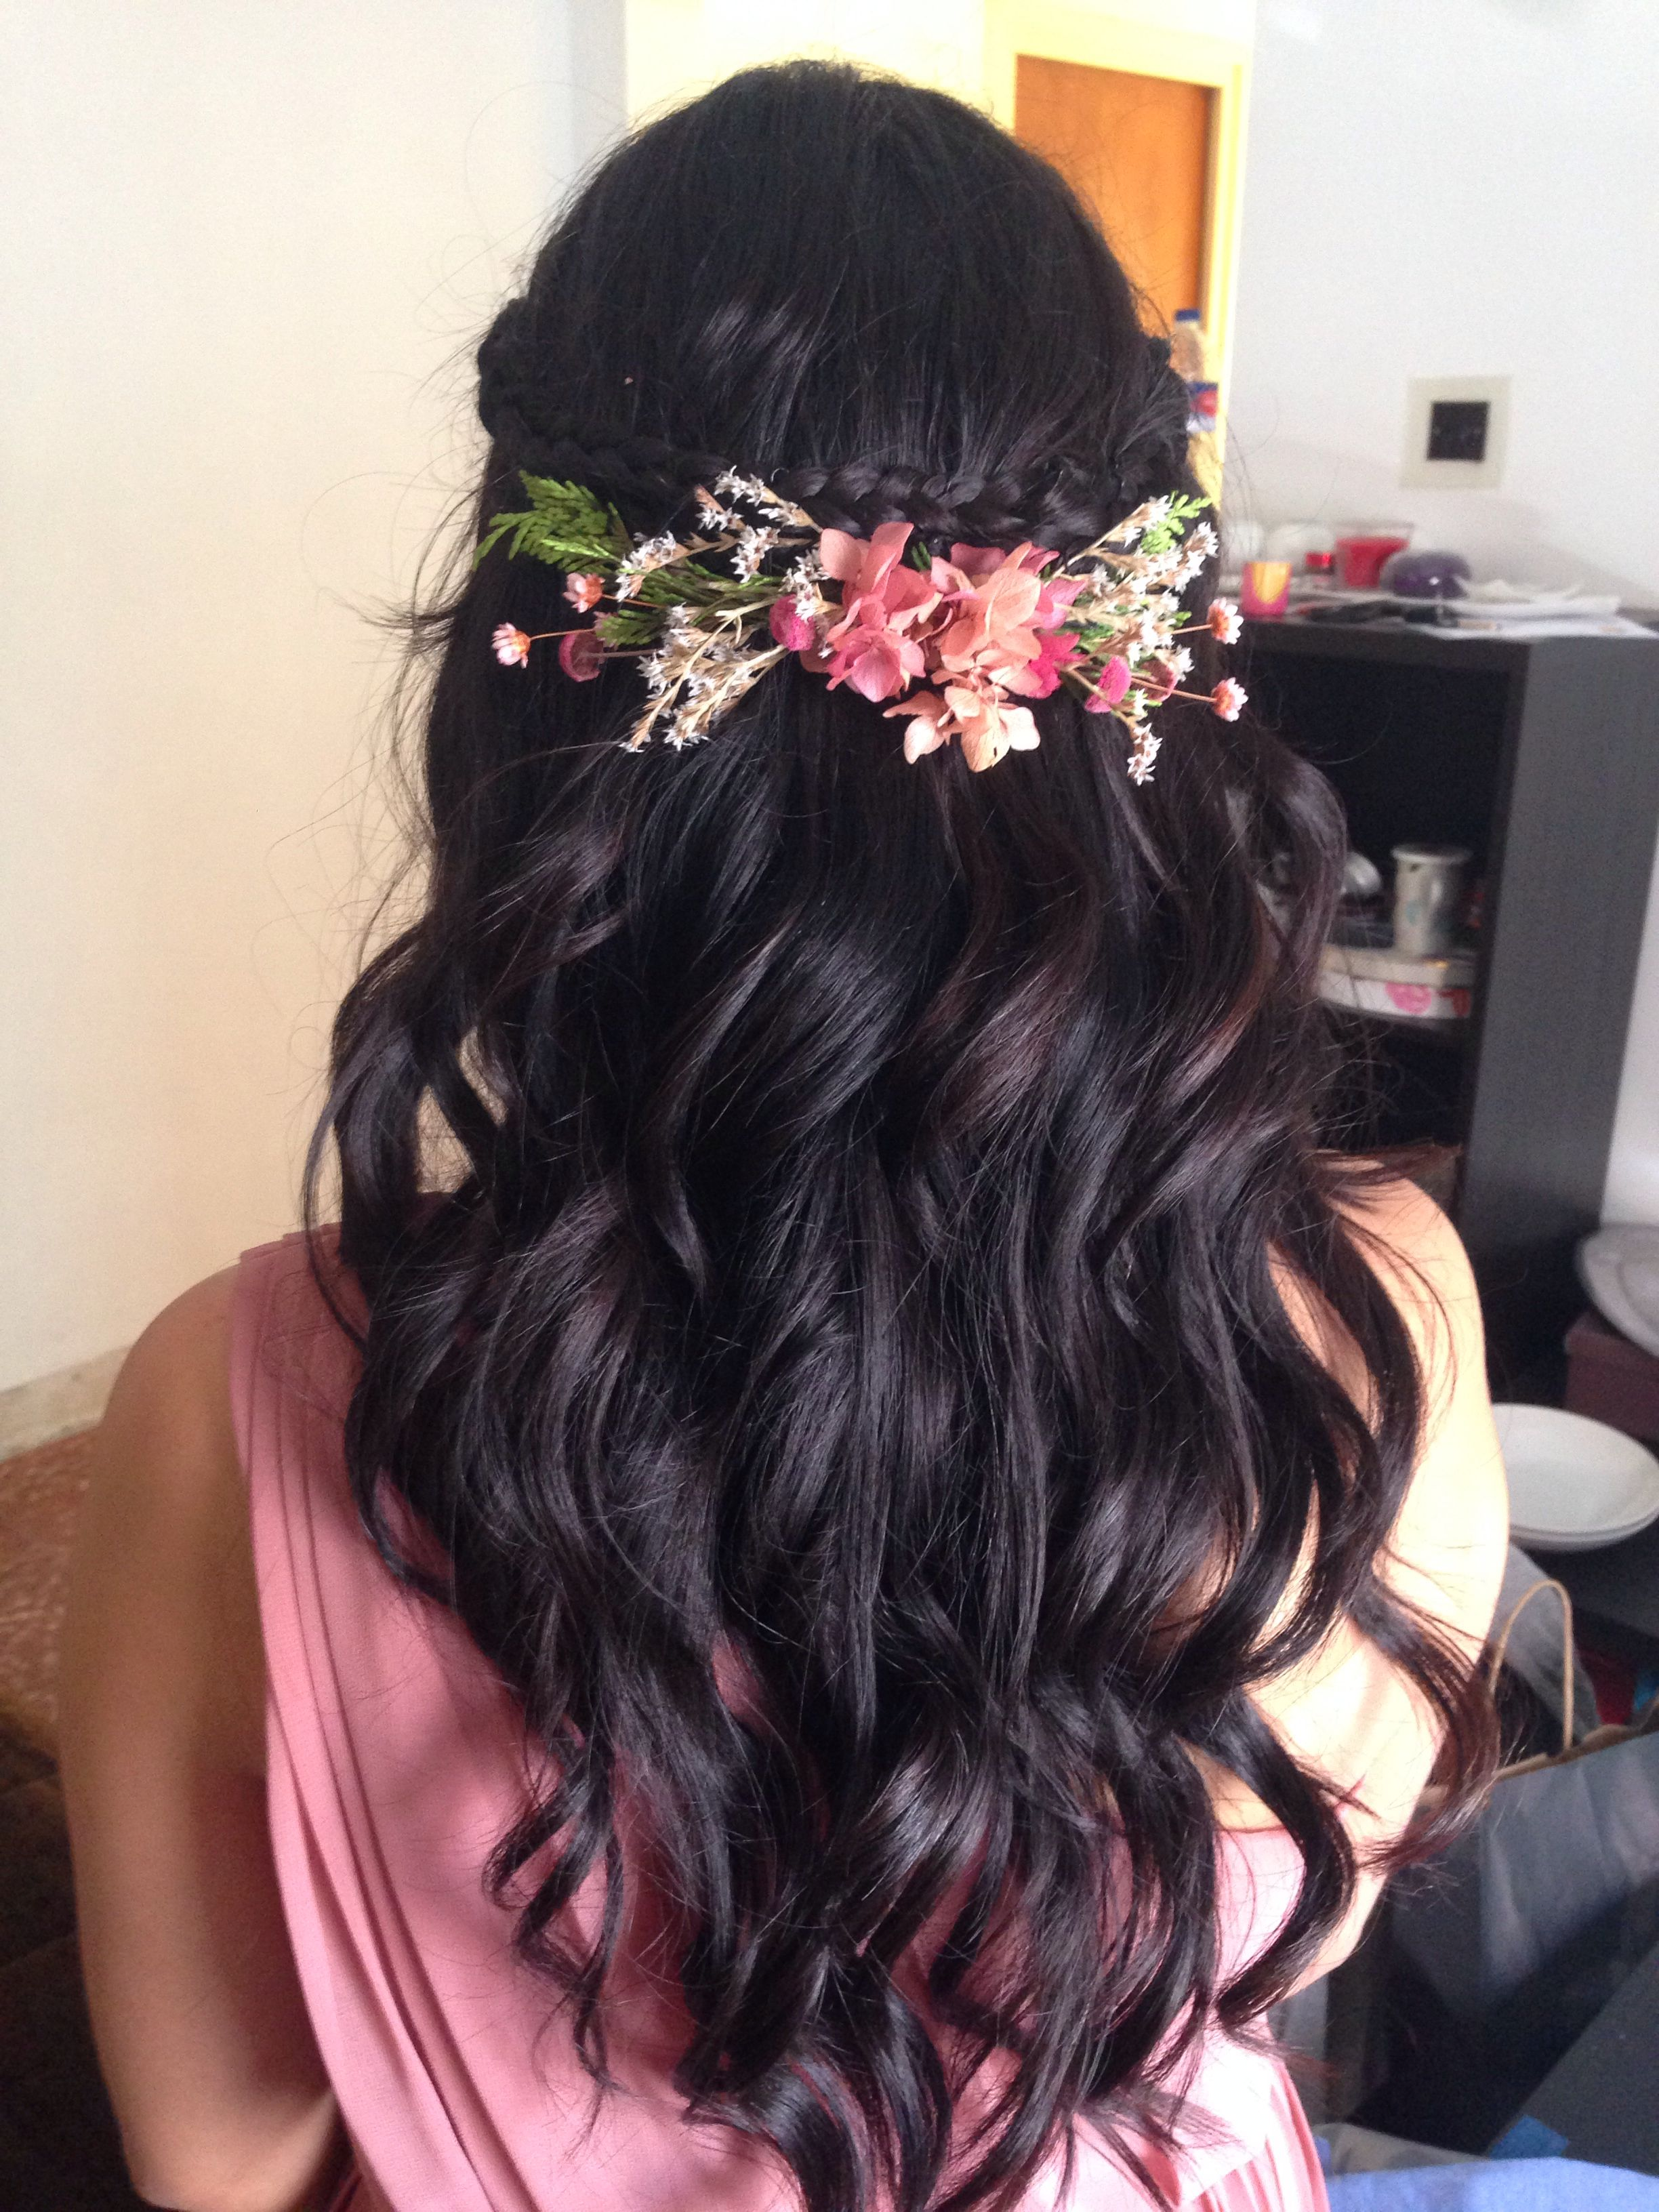 curly open hair adorned with floral hair clip bridal hairstyle ideas wedding inspirations. Black Bedroom Furniture Sets. Home Design Ideas